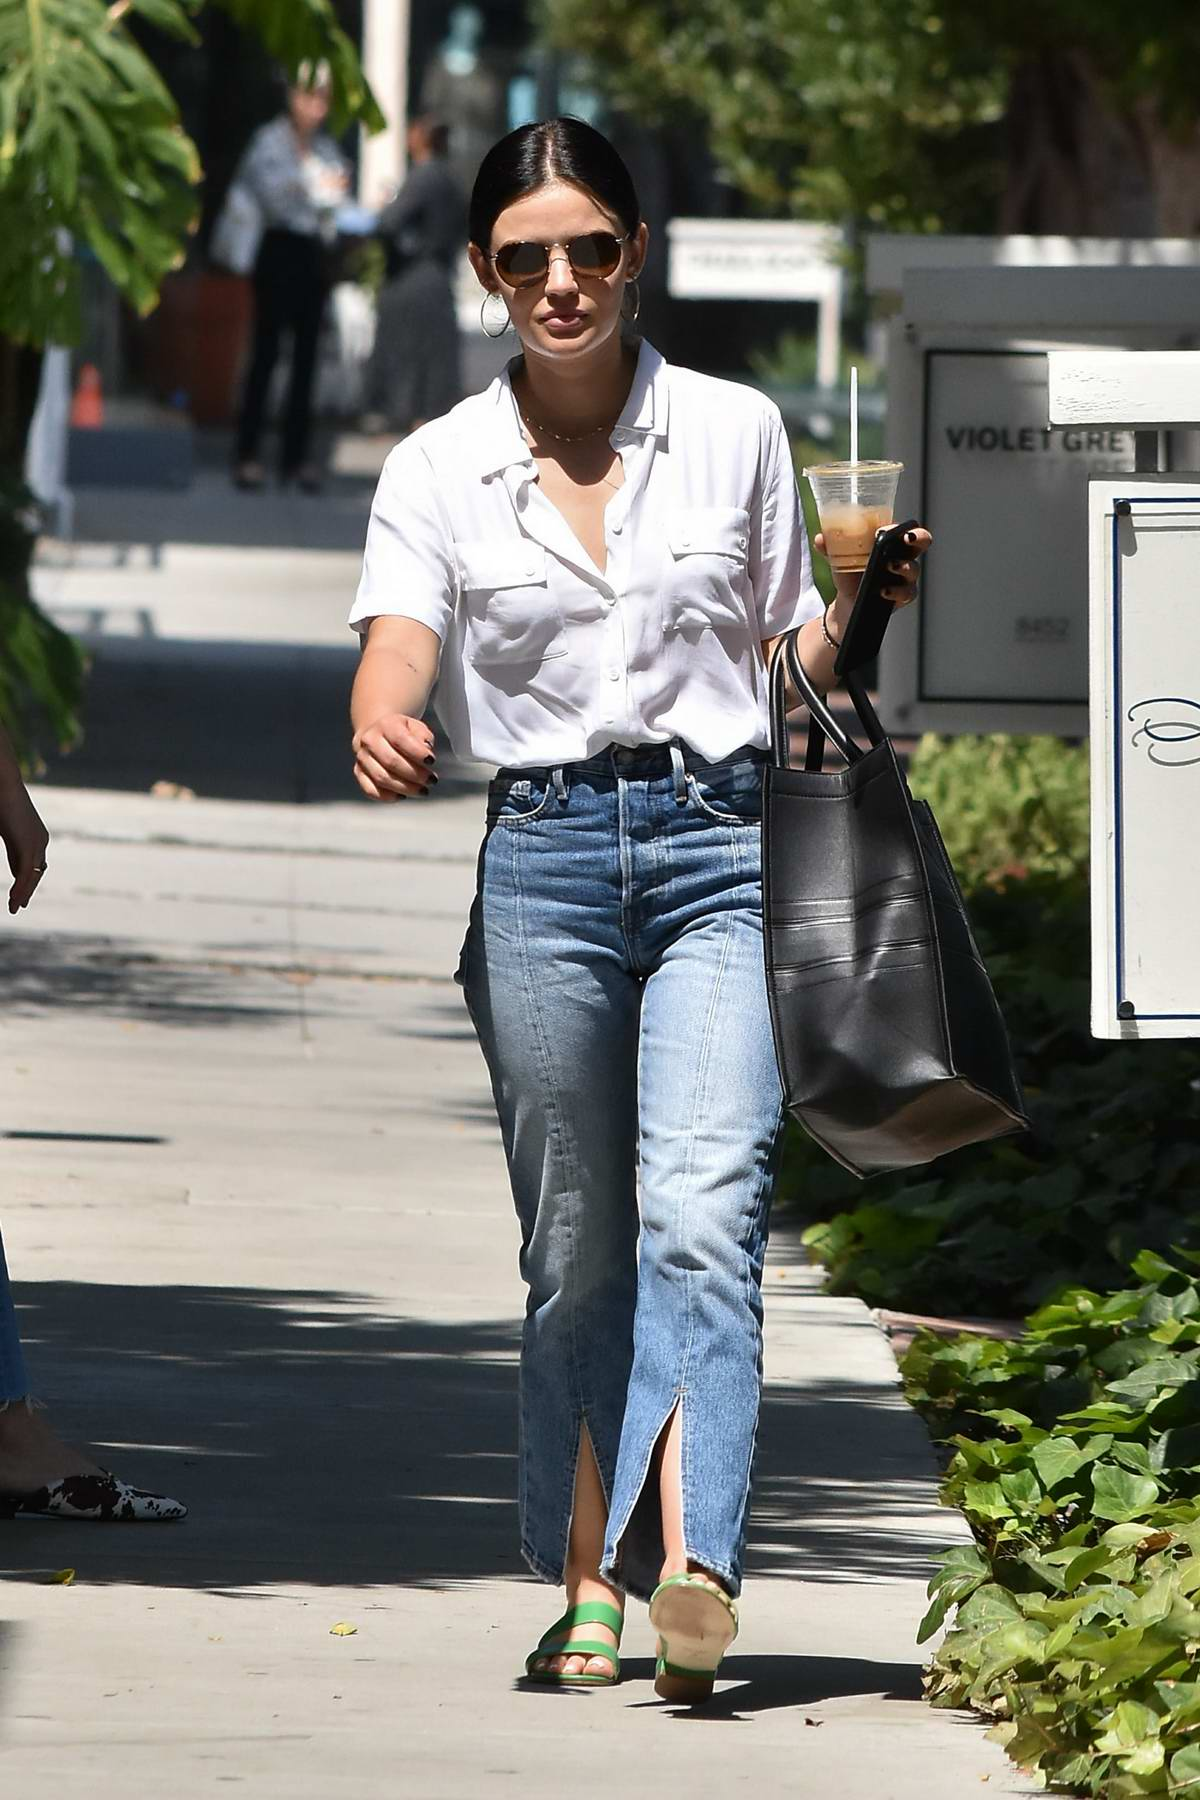 Lucy Hale wears a white shirt and flared jeans while running errands in Los Angeles